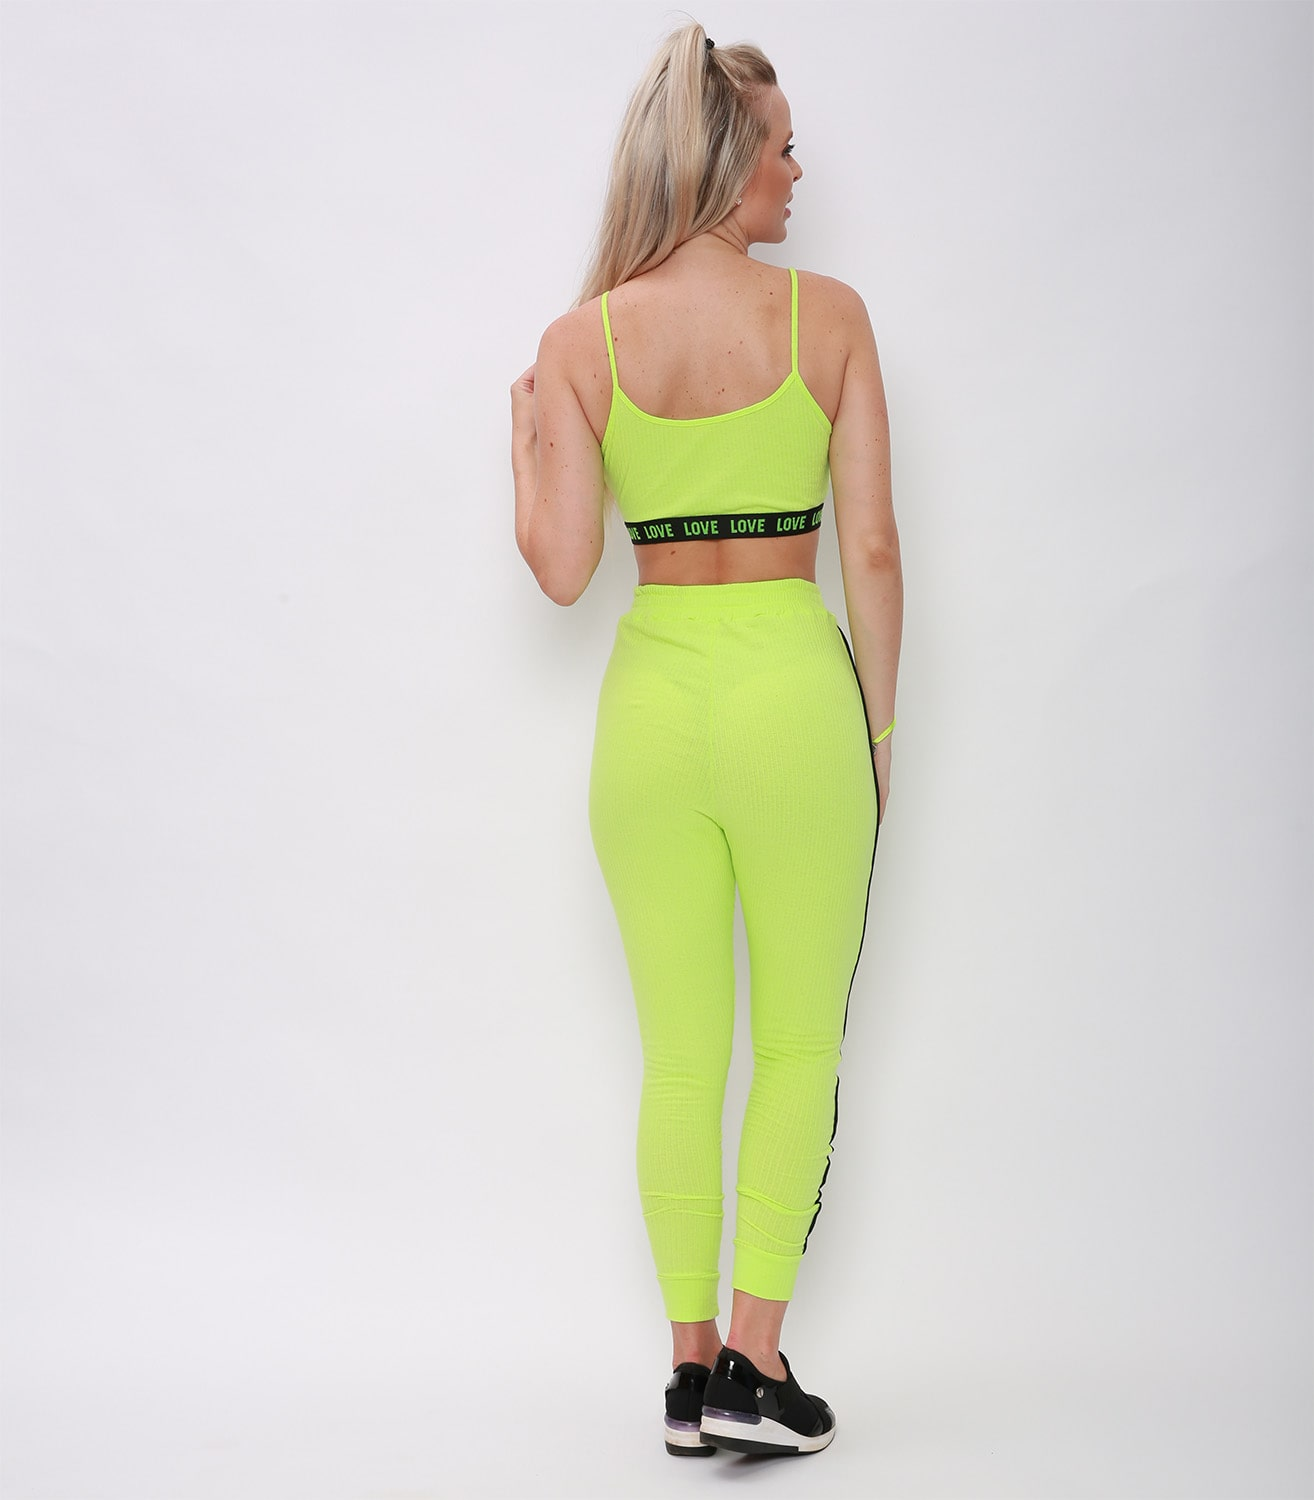 TOP RELAXING VERDE NEON